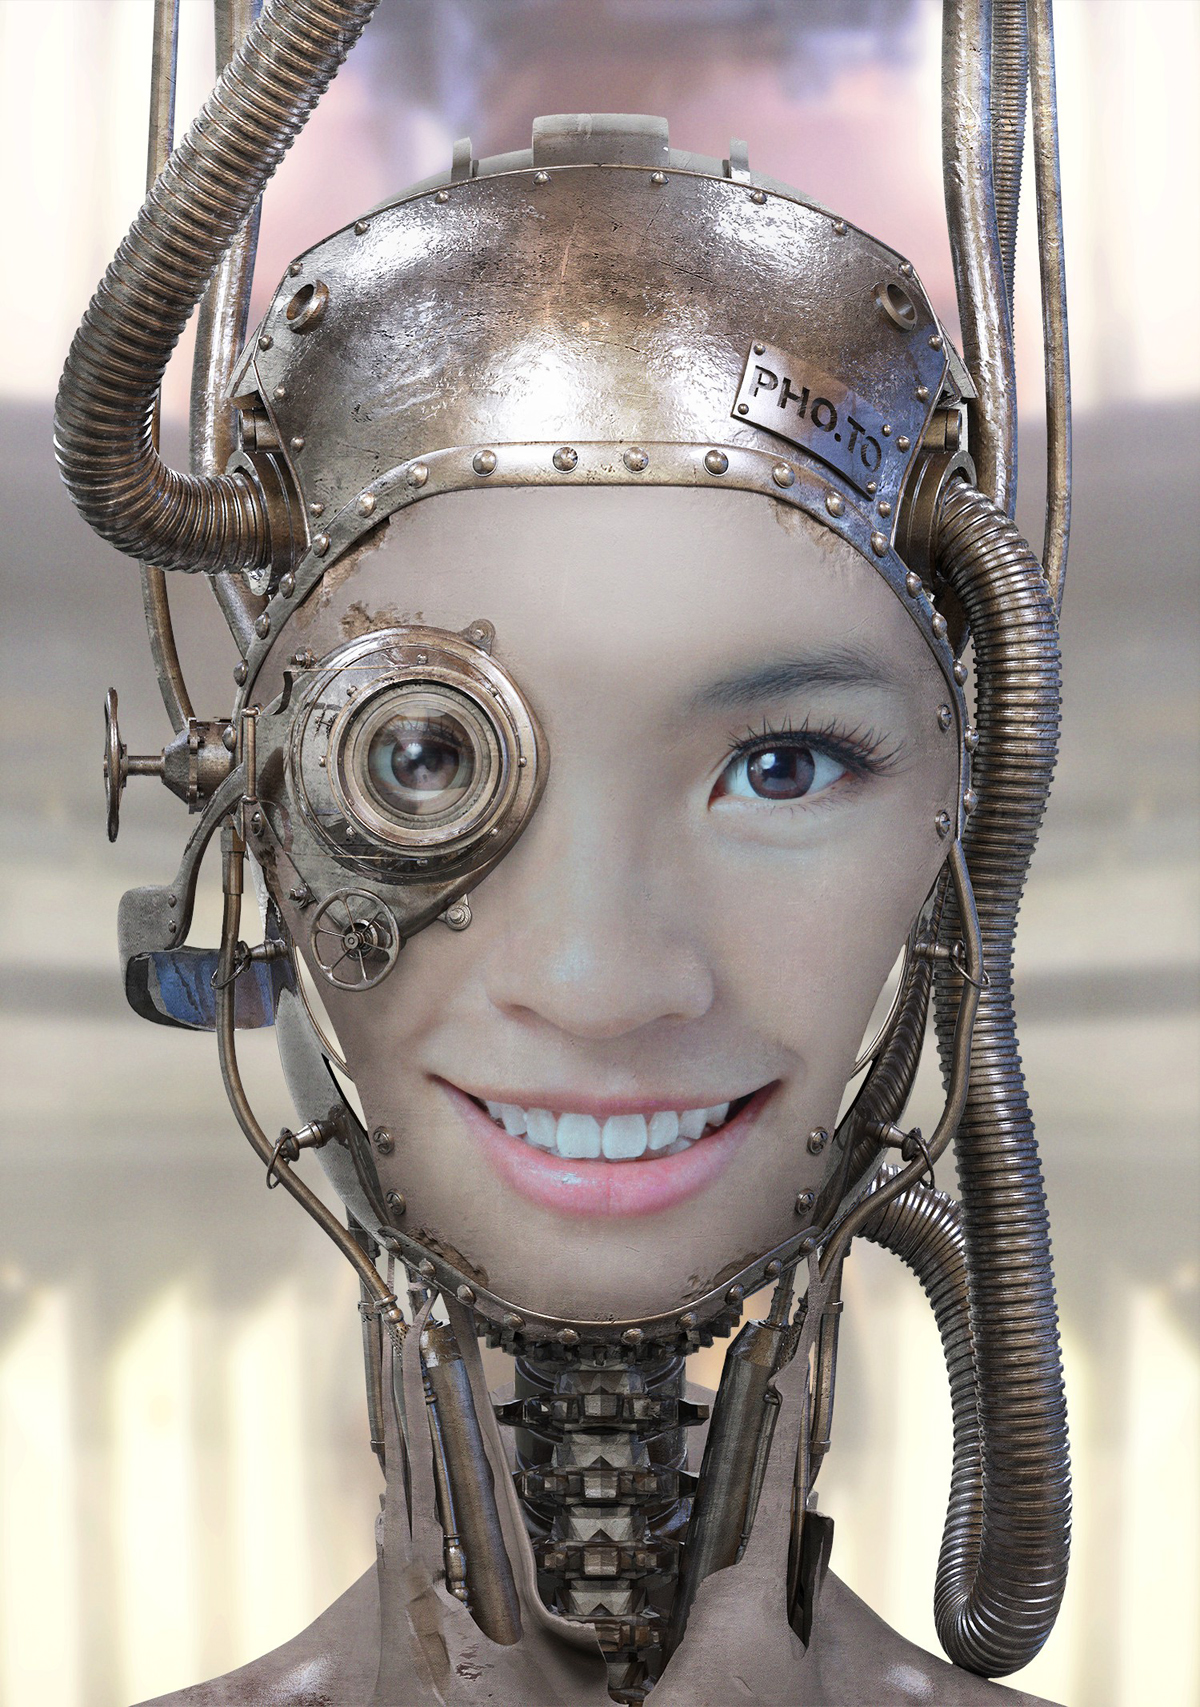 Turn yourself in a portrait photo into a droid with robot face effect